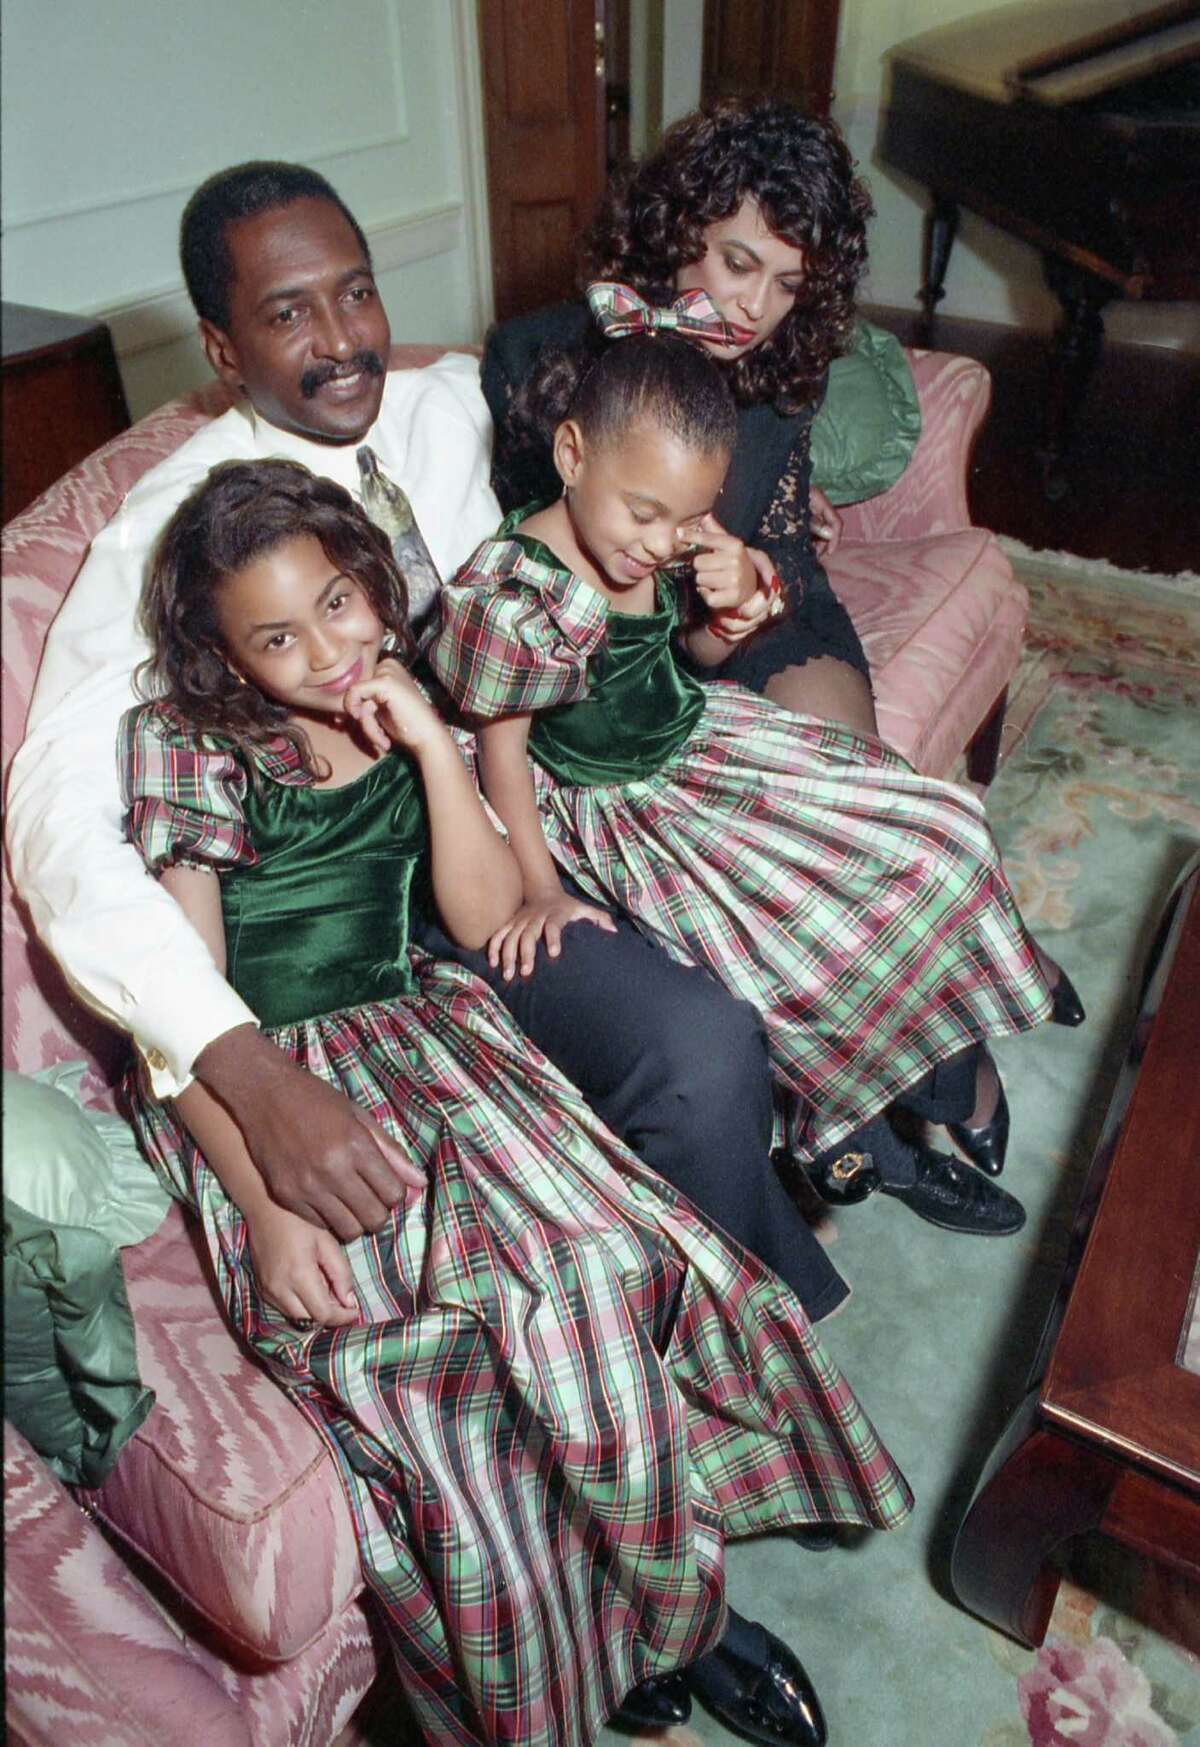 Tina & Mathew Knowles, with their two daughters, Beyonce and Solange.